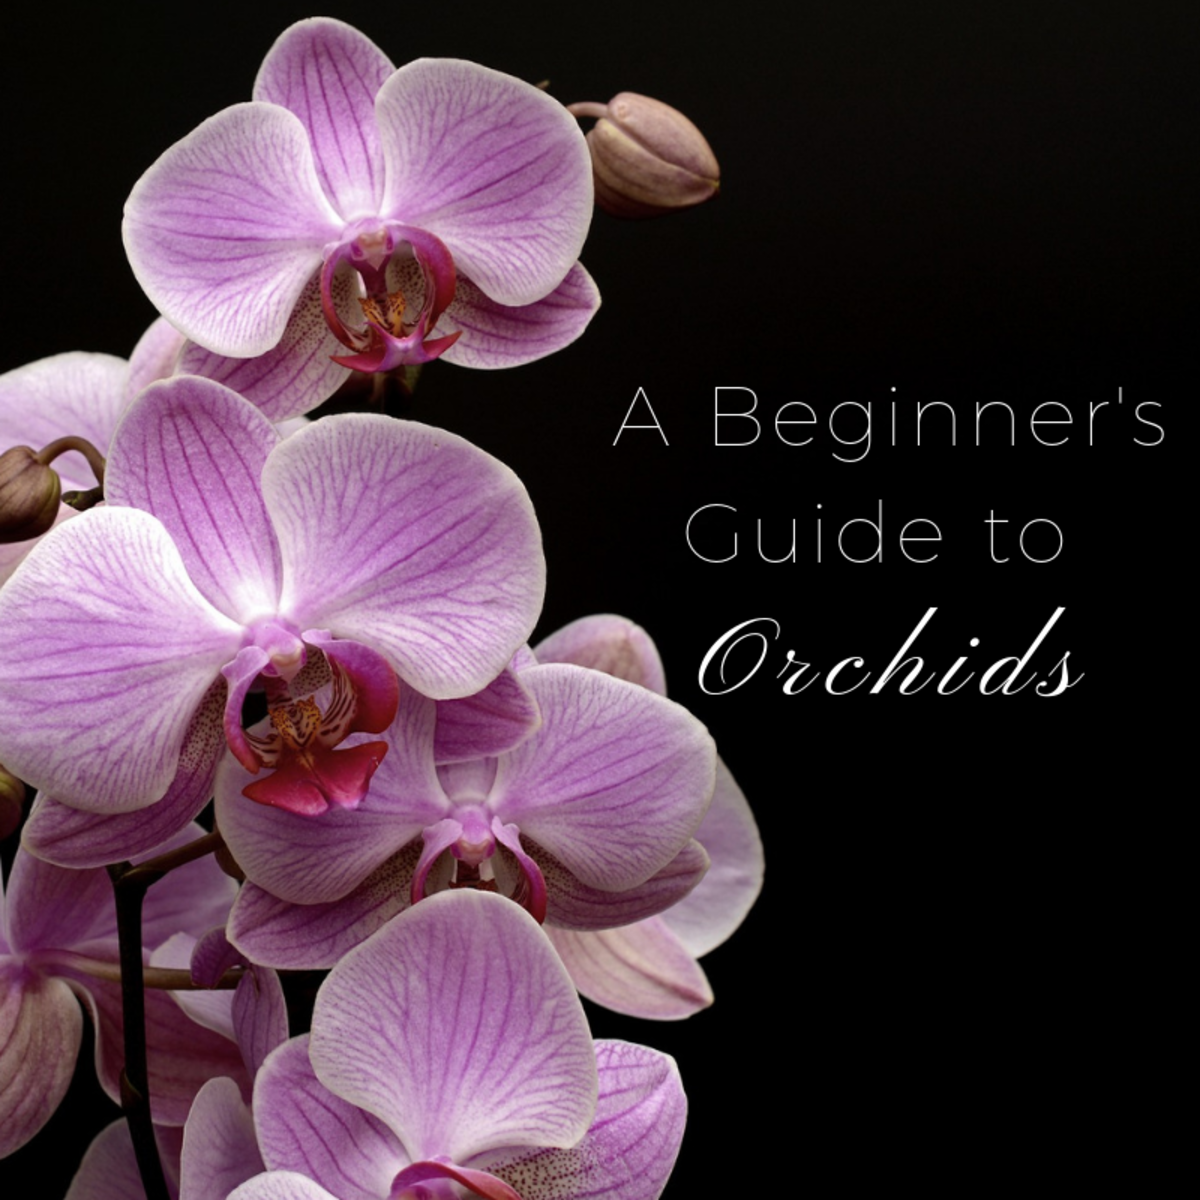 This guide provides all the data you need to grow wonderfully beautiful orchids.